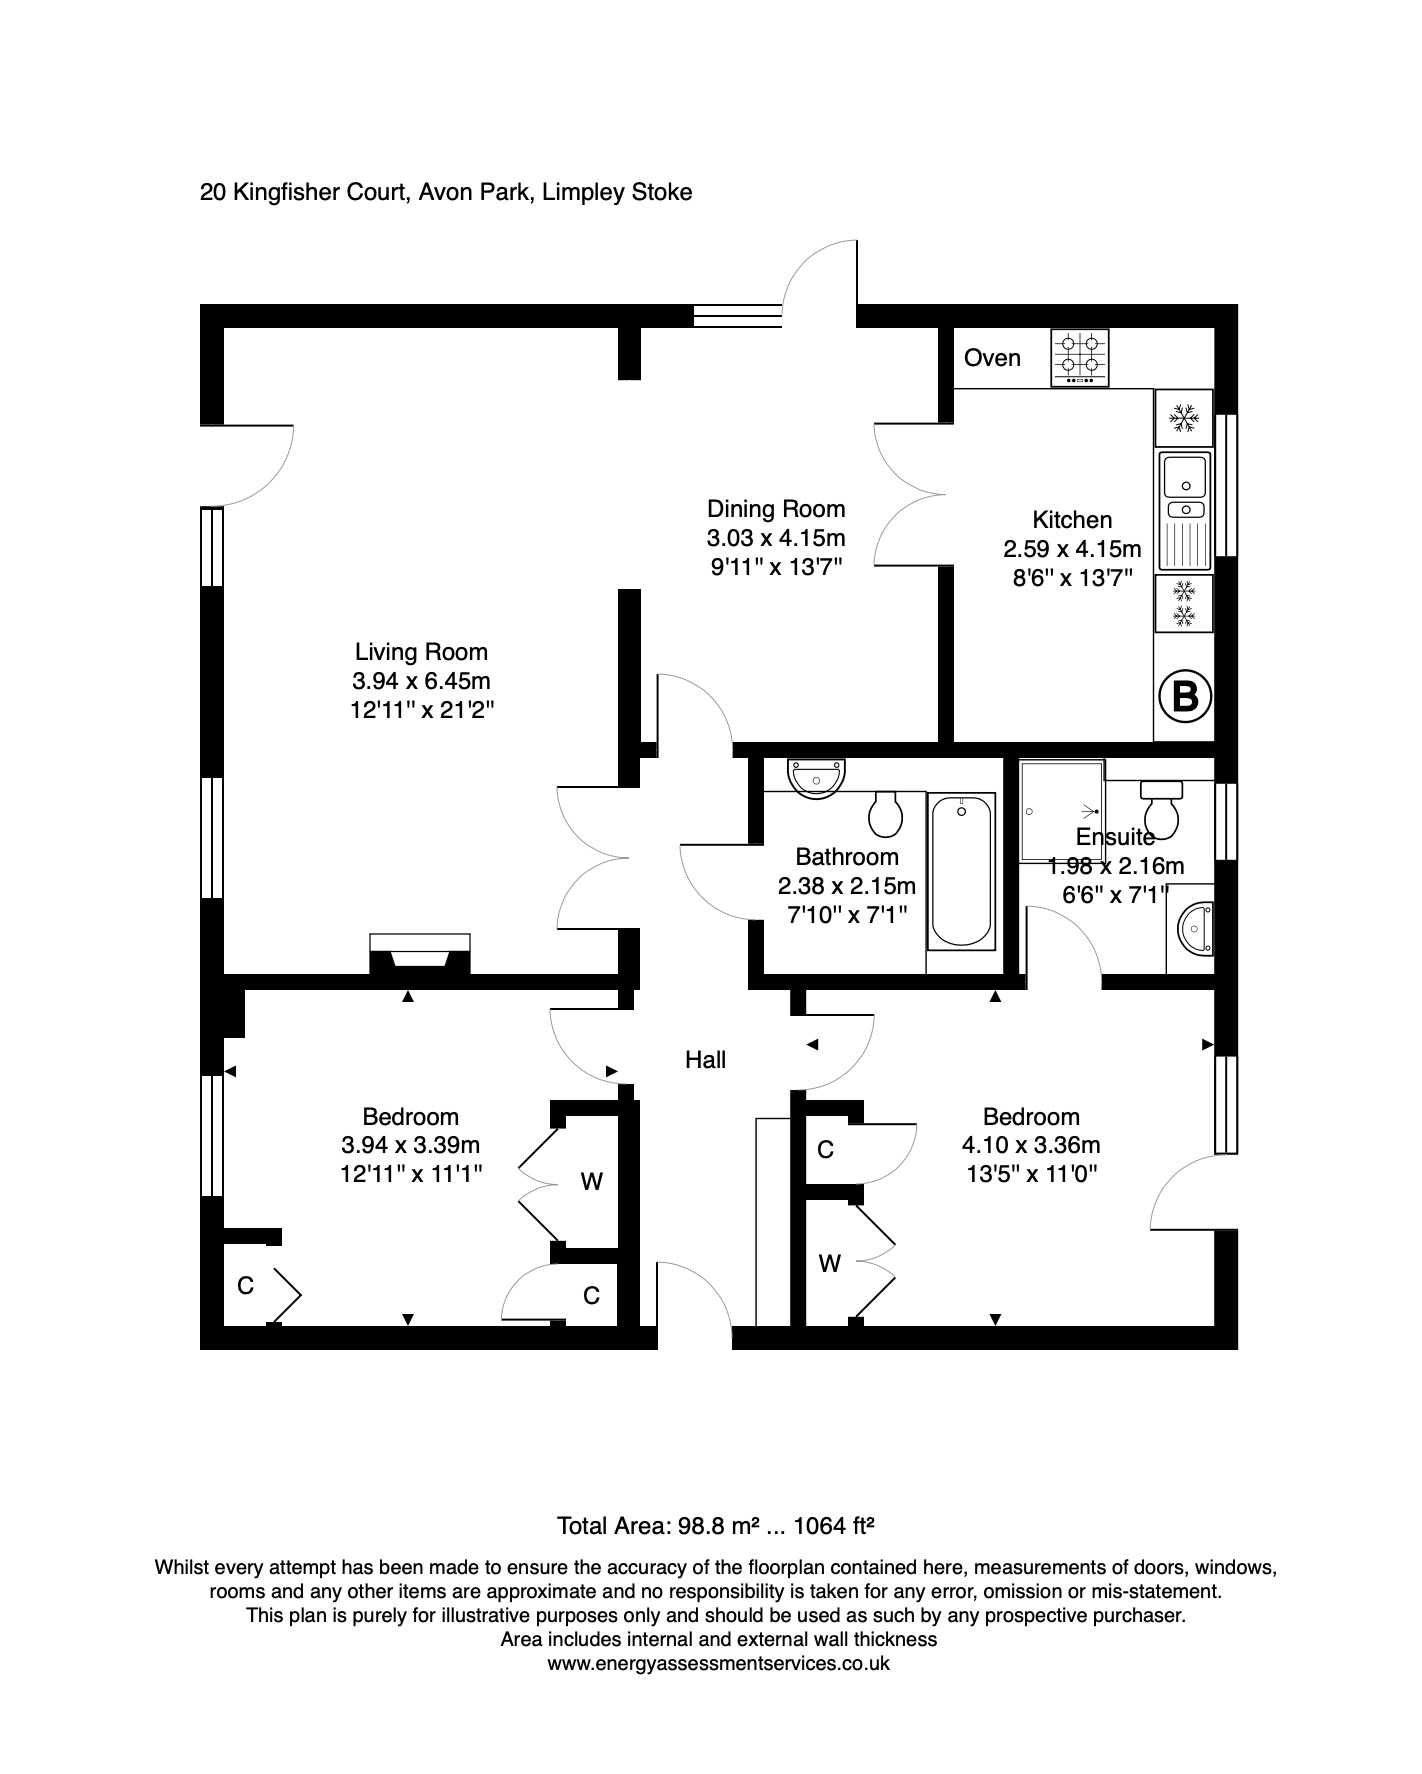 20 Kingfisher Court Floorplan